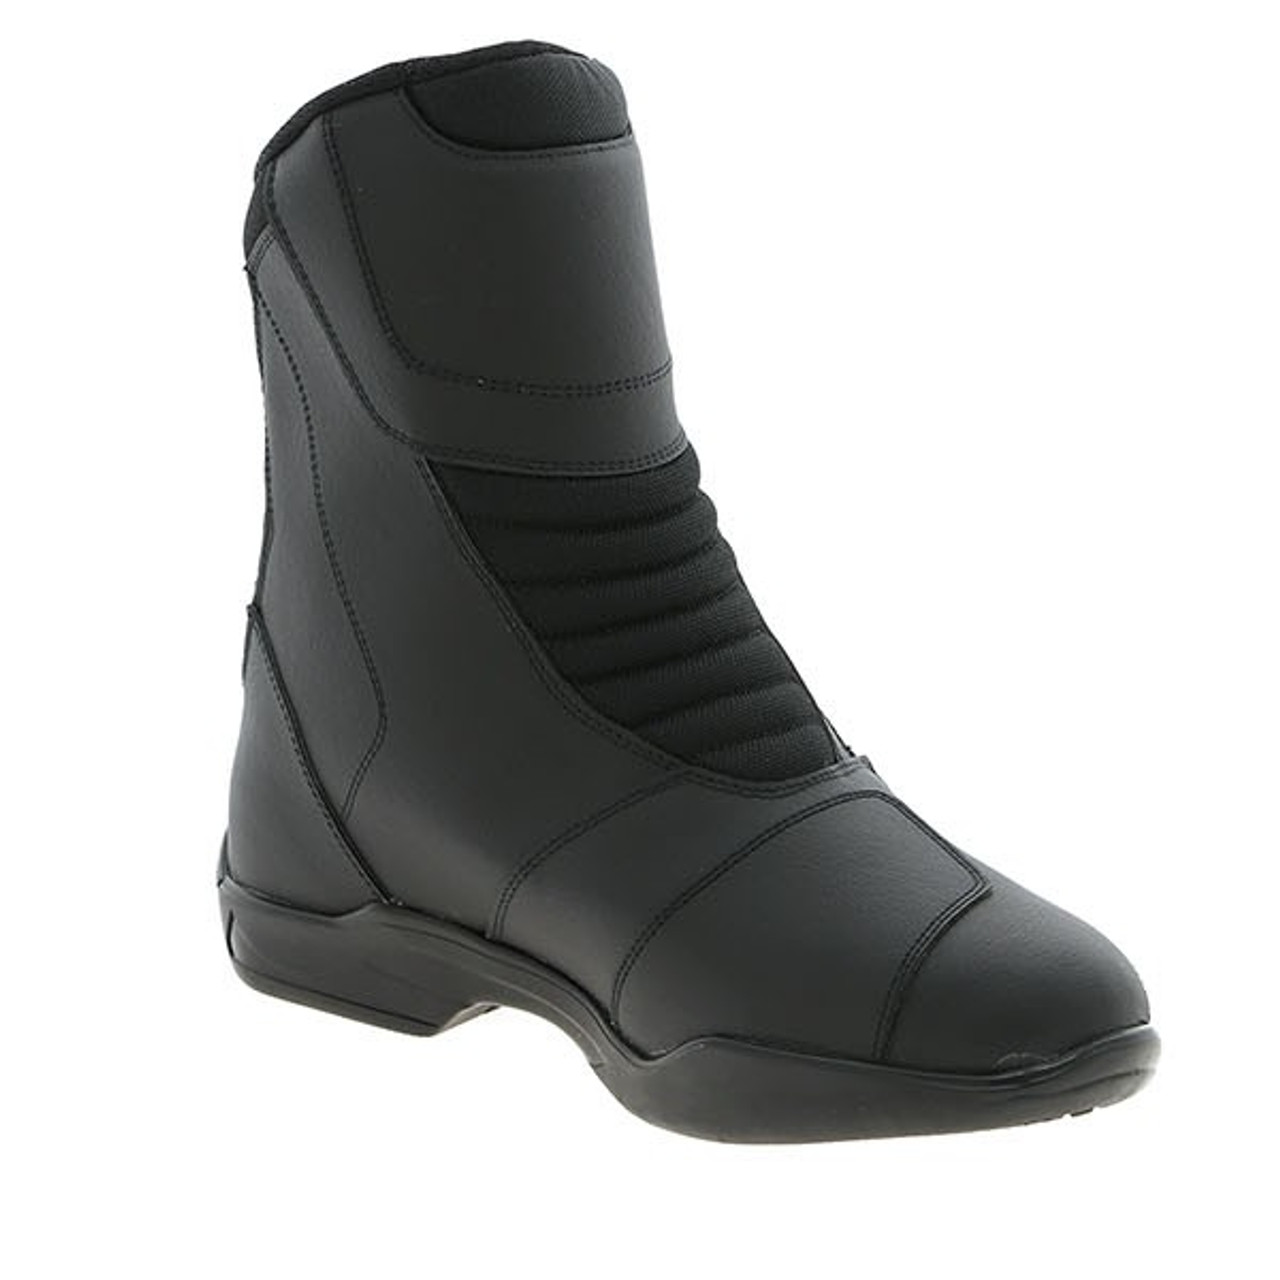 Forma Rival Touring Motorcycle Boots, Mens, Black, Waterproof